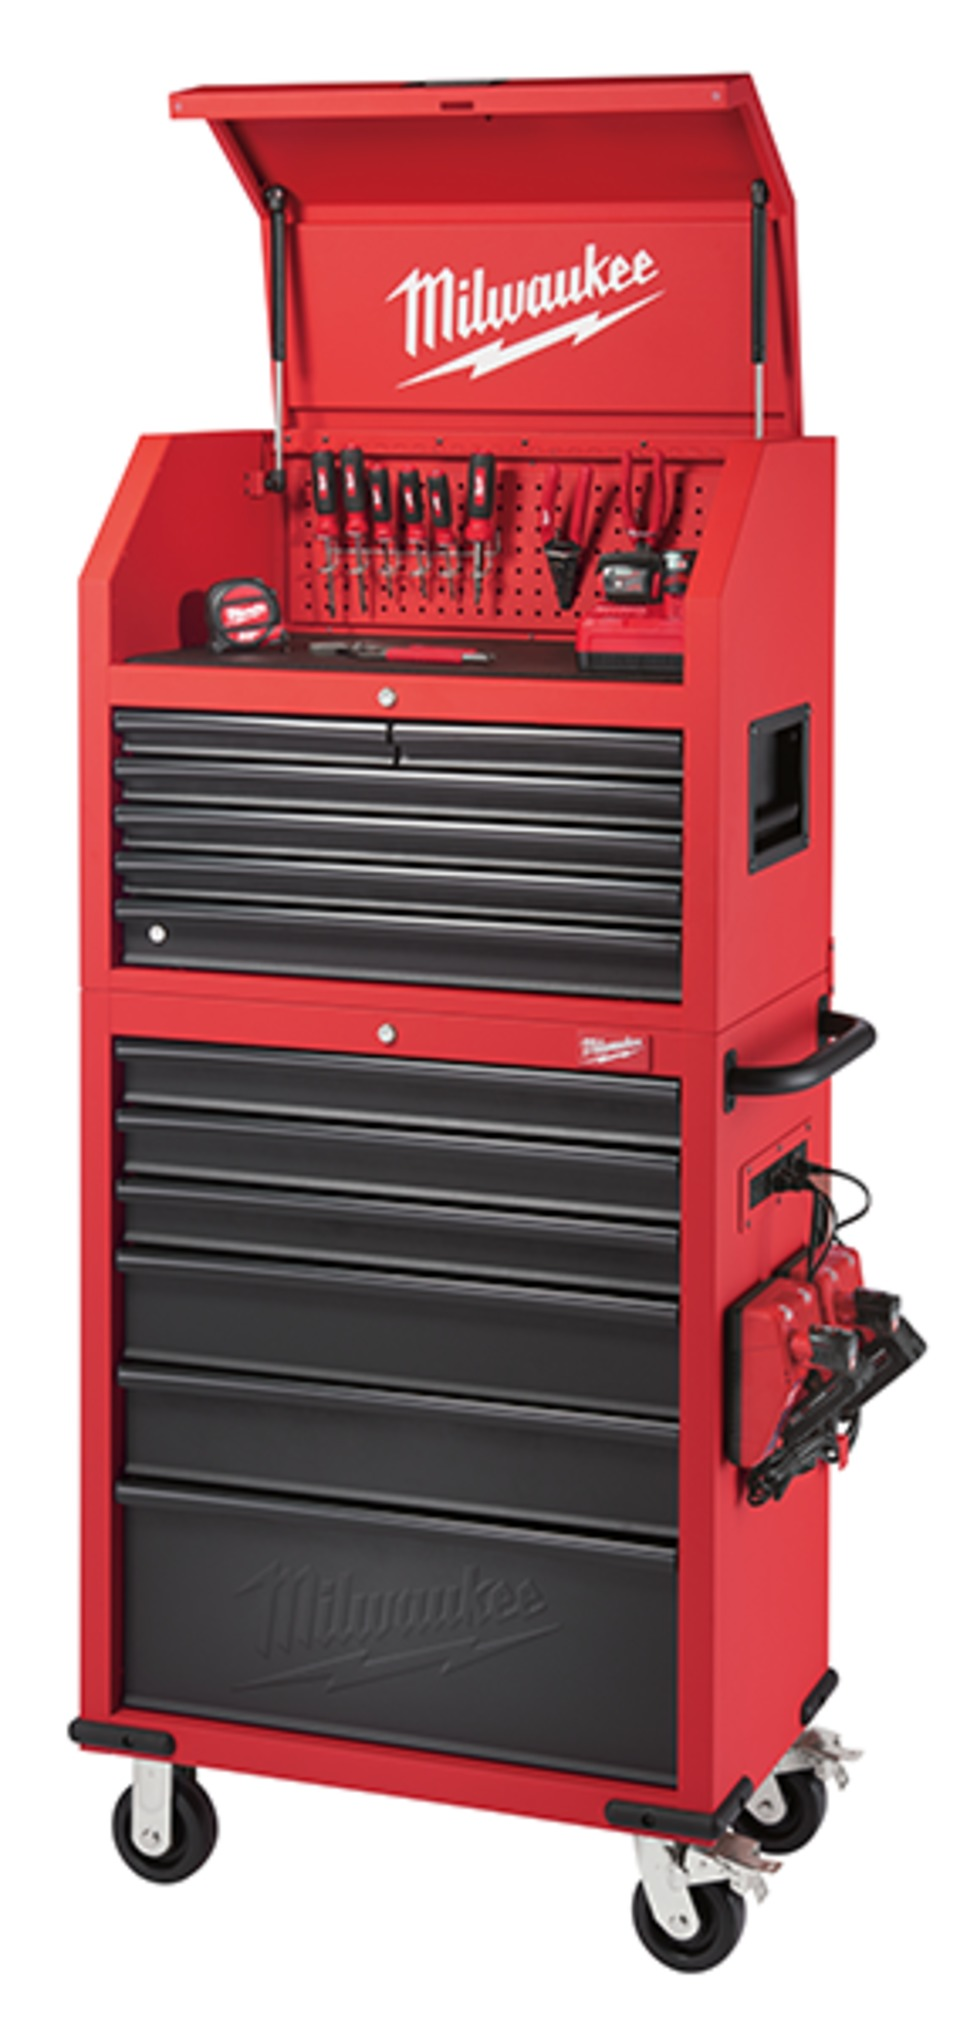 The Milwaukee Tool 30u201d Steel Storage Chest And Cabinet Is Designed With 12  Drawers With 100 Lb Soft Close Slides, Independent Locking Drawers And A  Pull Out ...